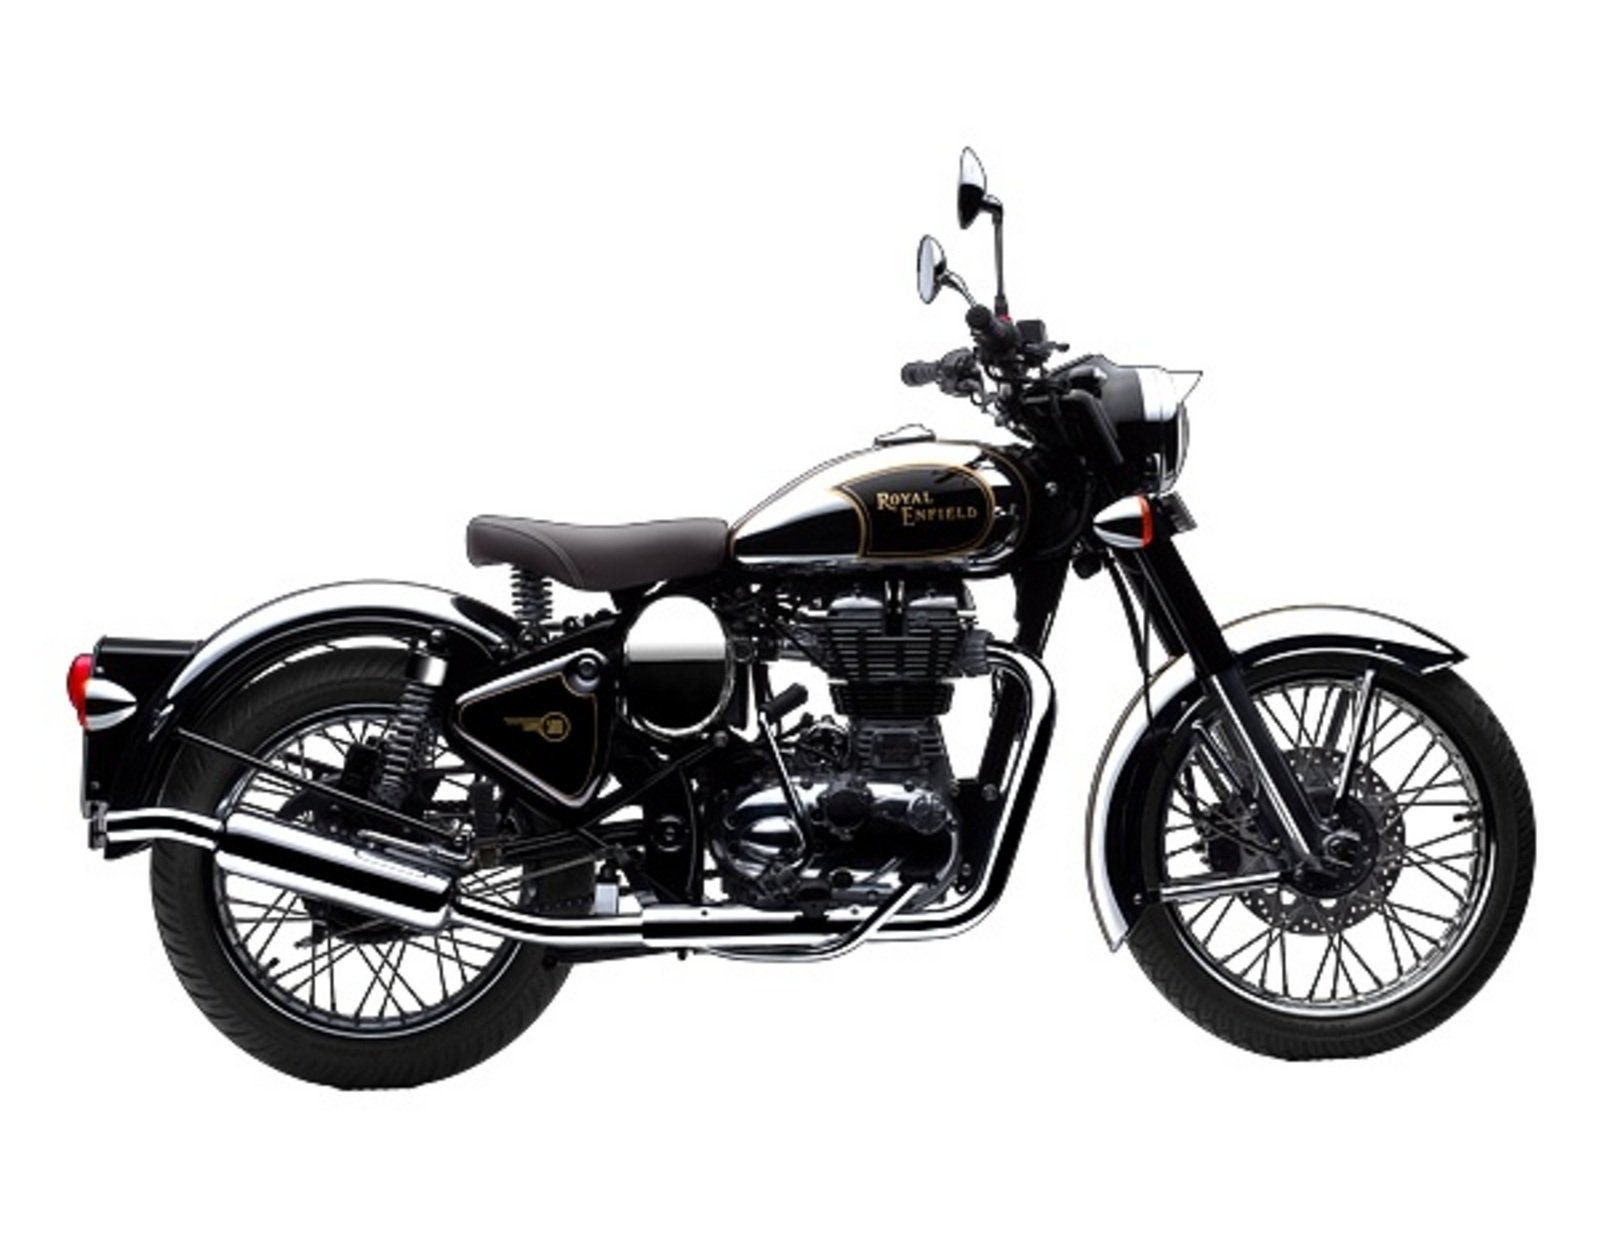 2013 royal enfield classic chrome 500 review top speed. Black Bedroom Furniture Sets. Home Design Ideas